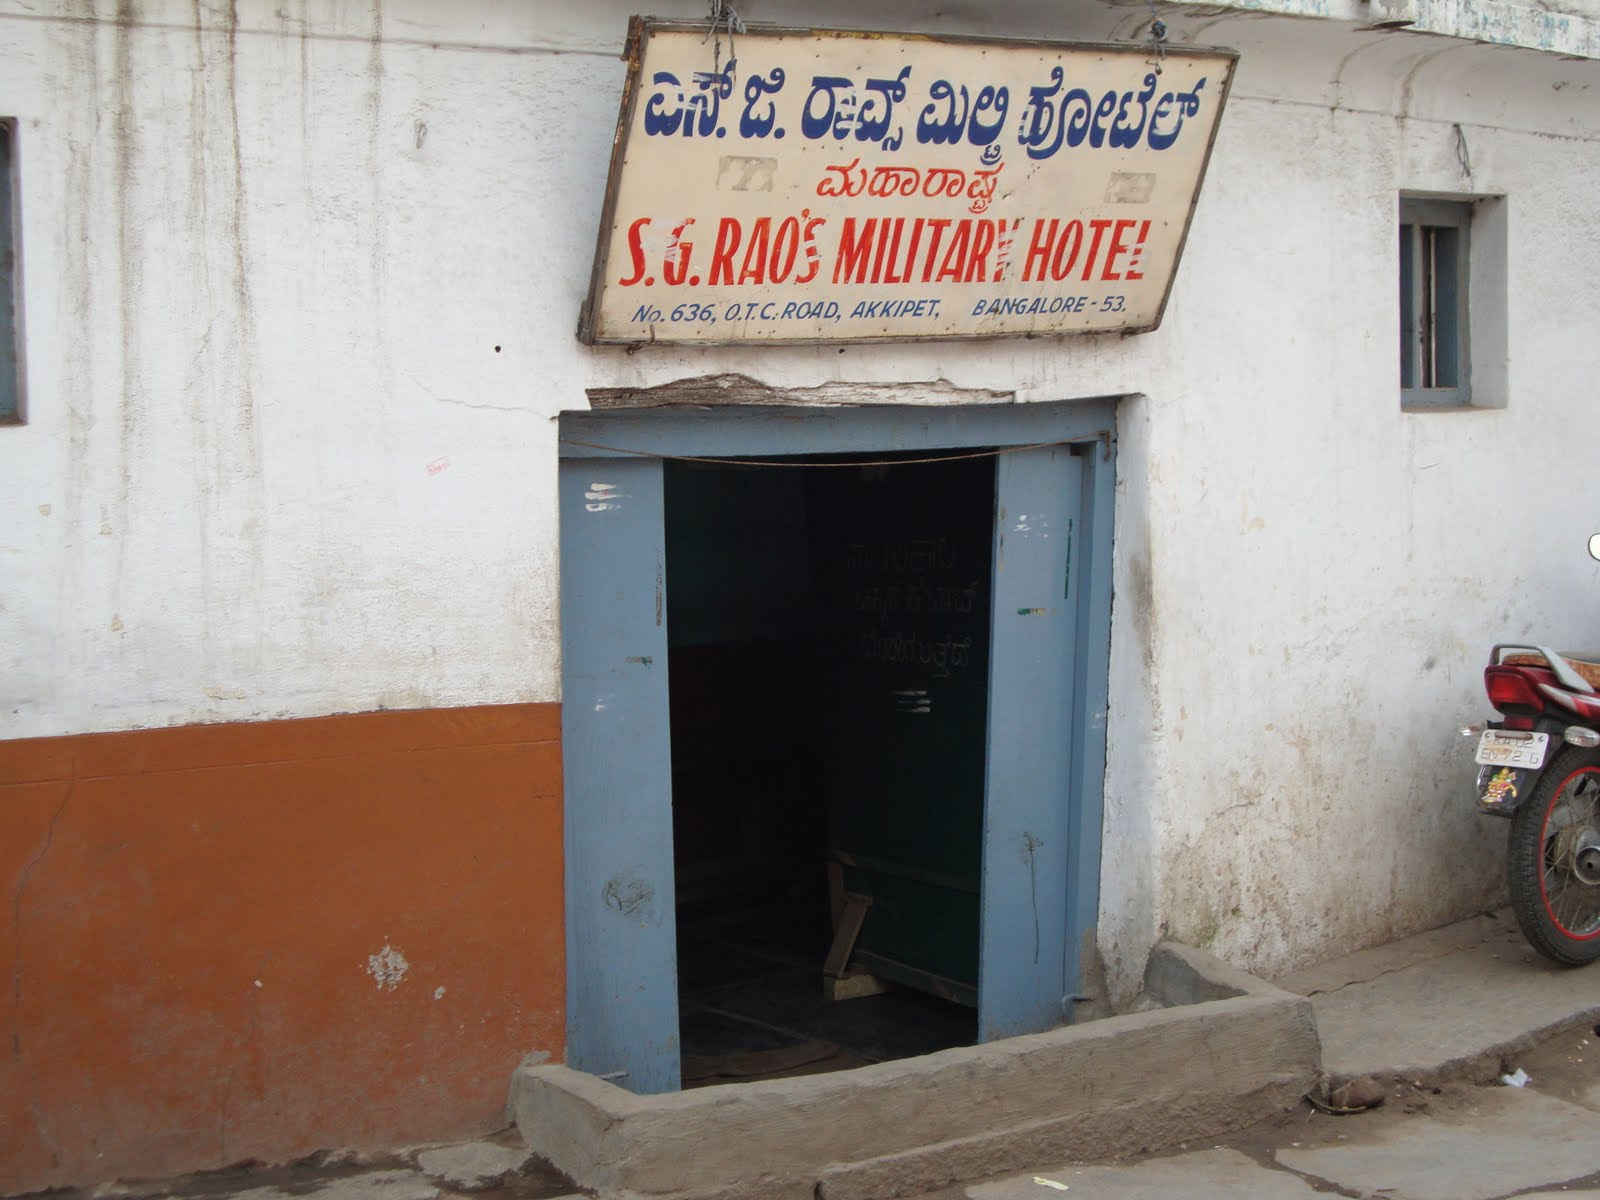 This Is Probable The Oldest Military Hotel In Bangalore Being Elished 1908 A Common Term For Hotels Serving Non Veg Made